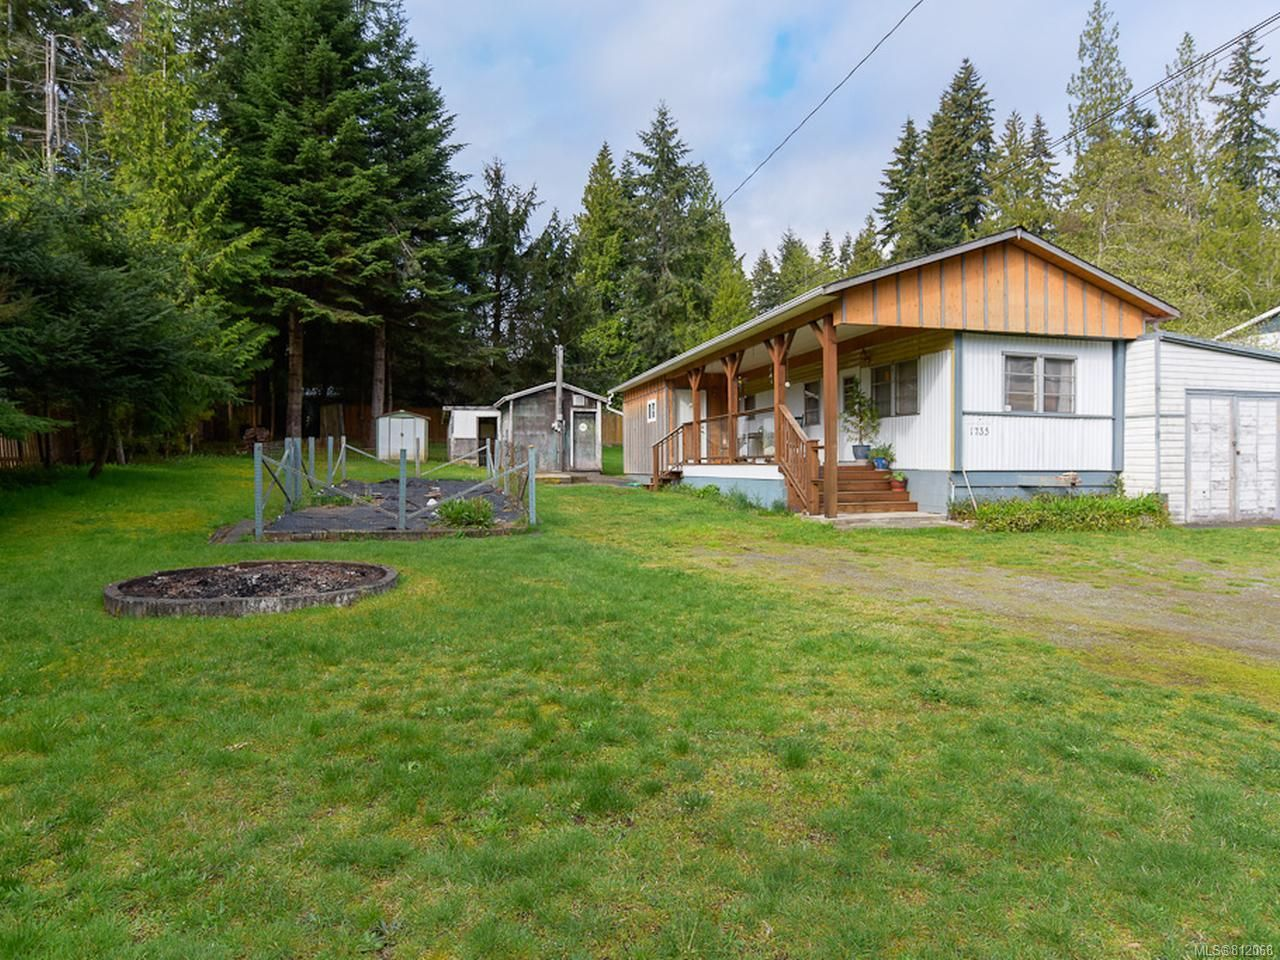 Main Photo: 1735 ARDEN ROAD in COURTENAY: CV Courtenay West Manufactured Home for sale (Comox Valley)  : MLS®# 812068